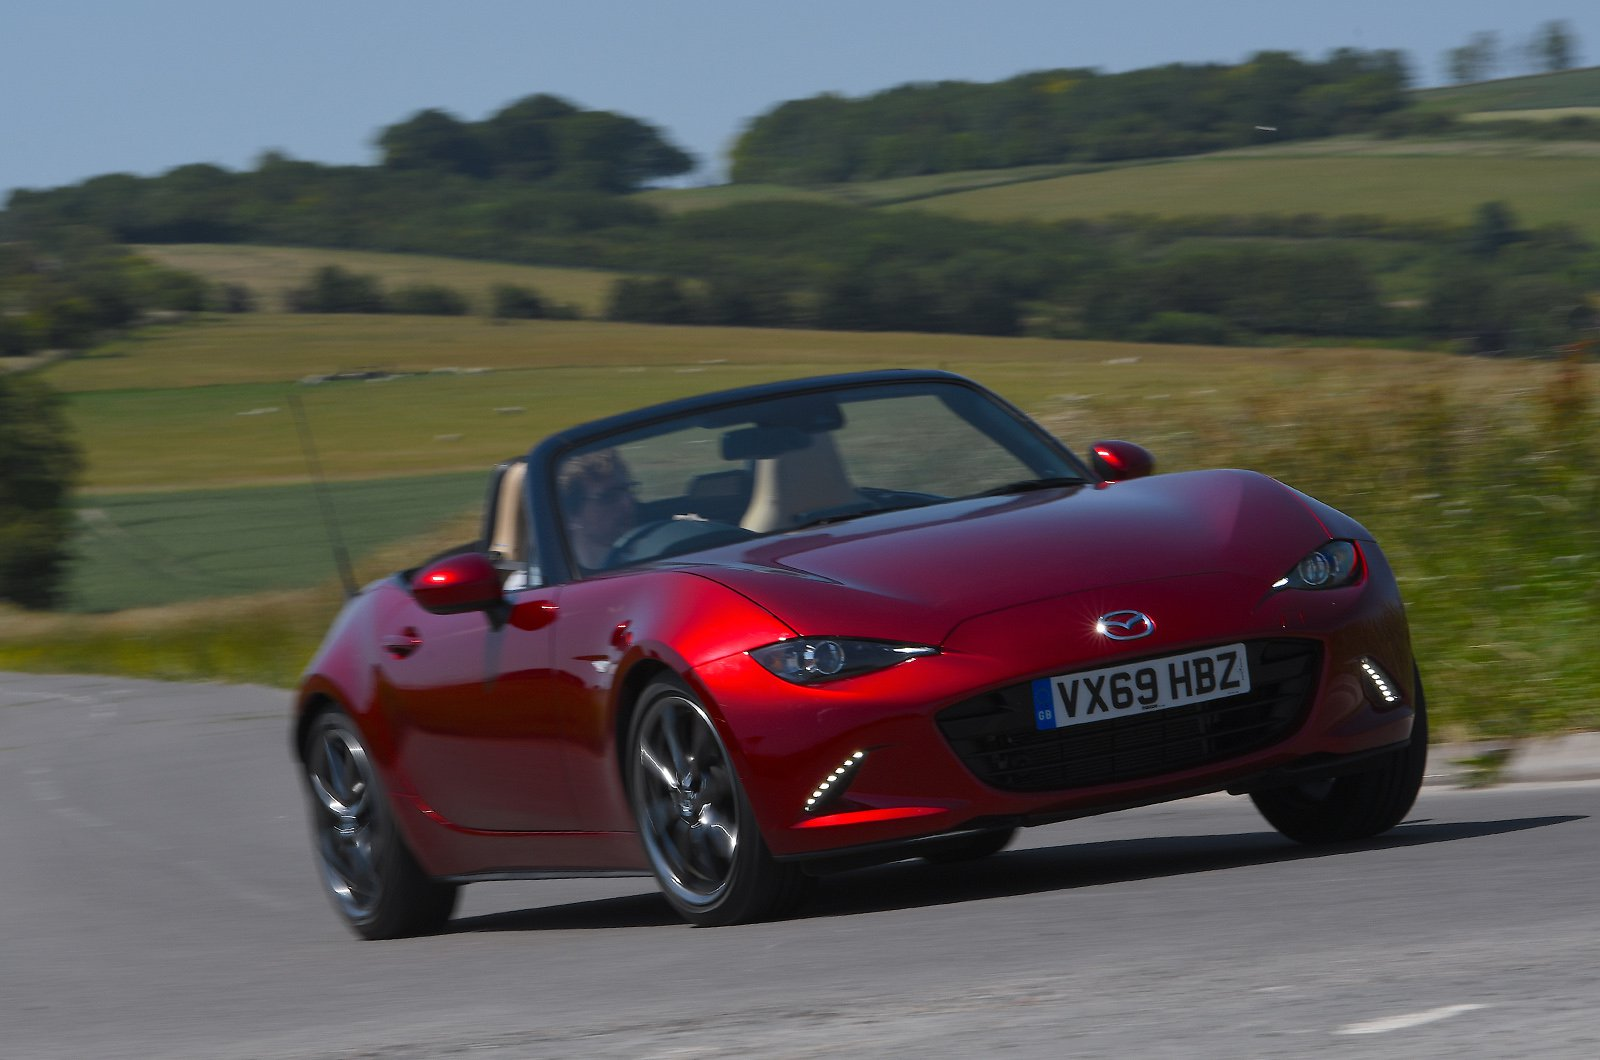 Used Mazda MX-5 long-term front 3/4 cornering